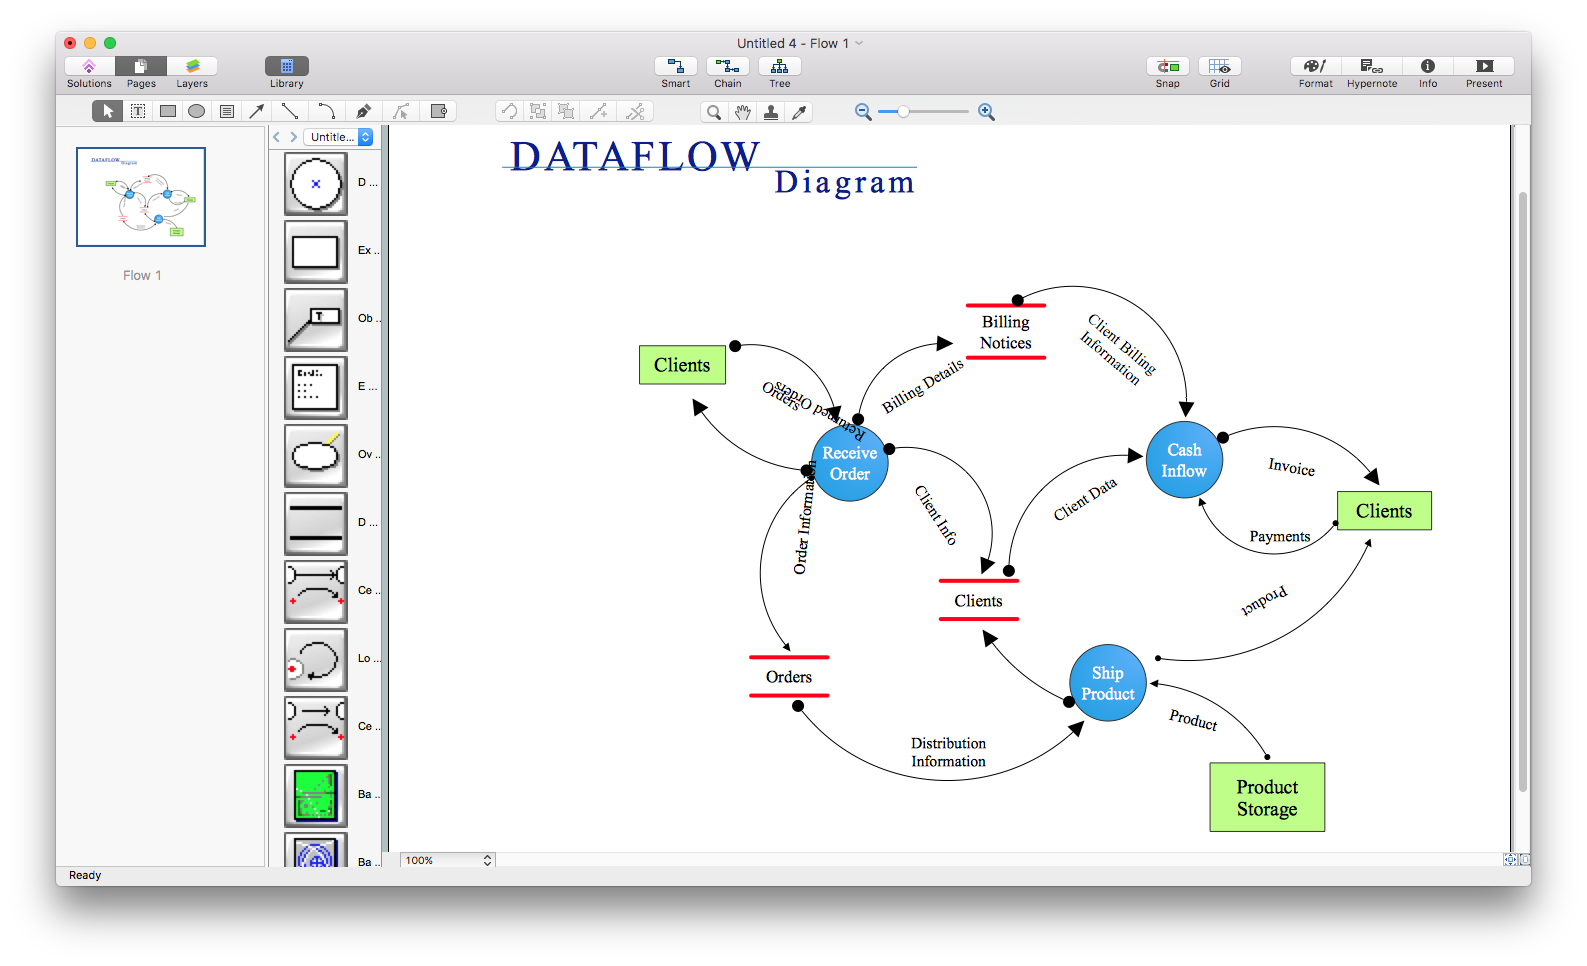 business flowchart converted from ms visio vdx format to conceptdraw pro format - Visio 2010 For Mac